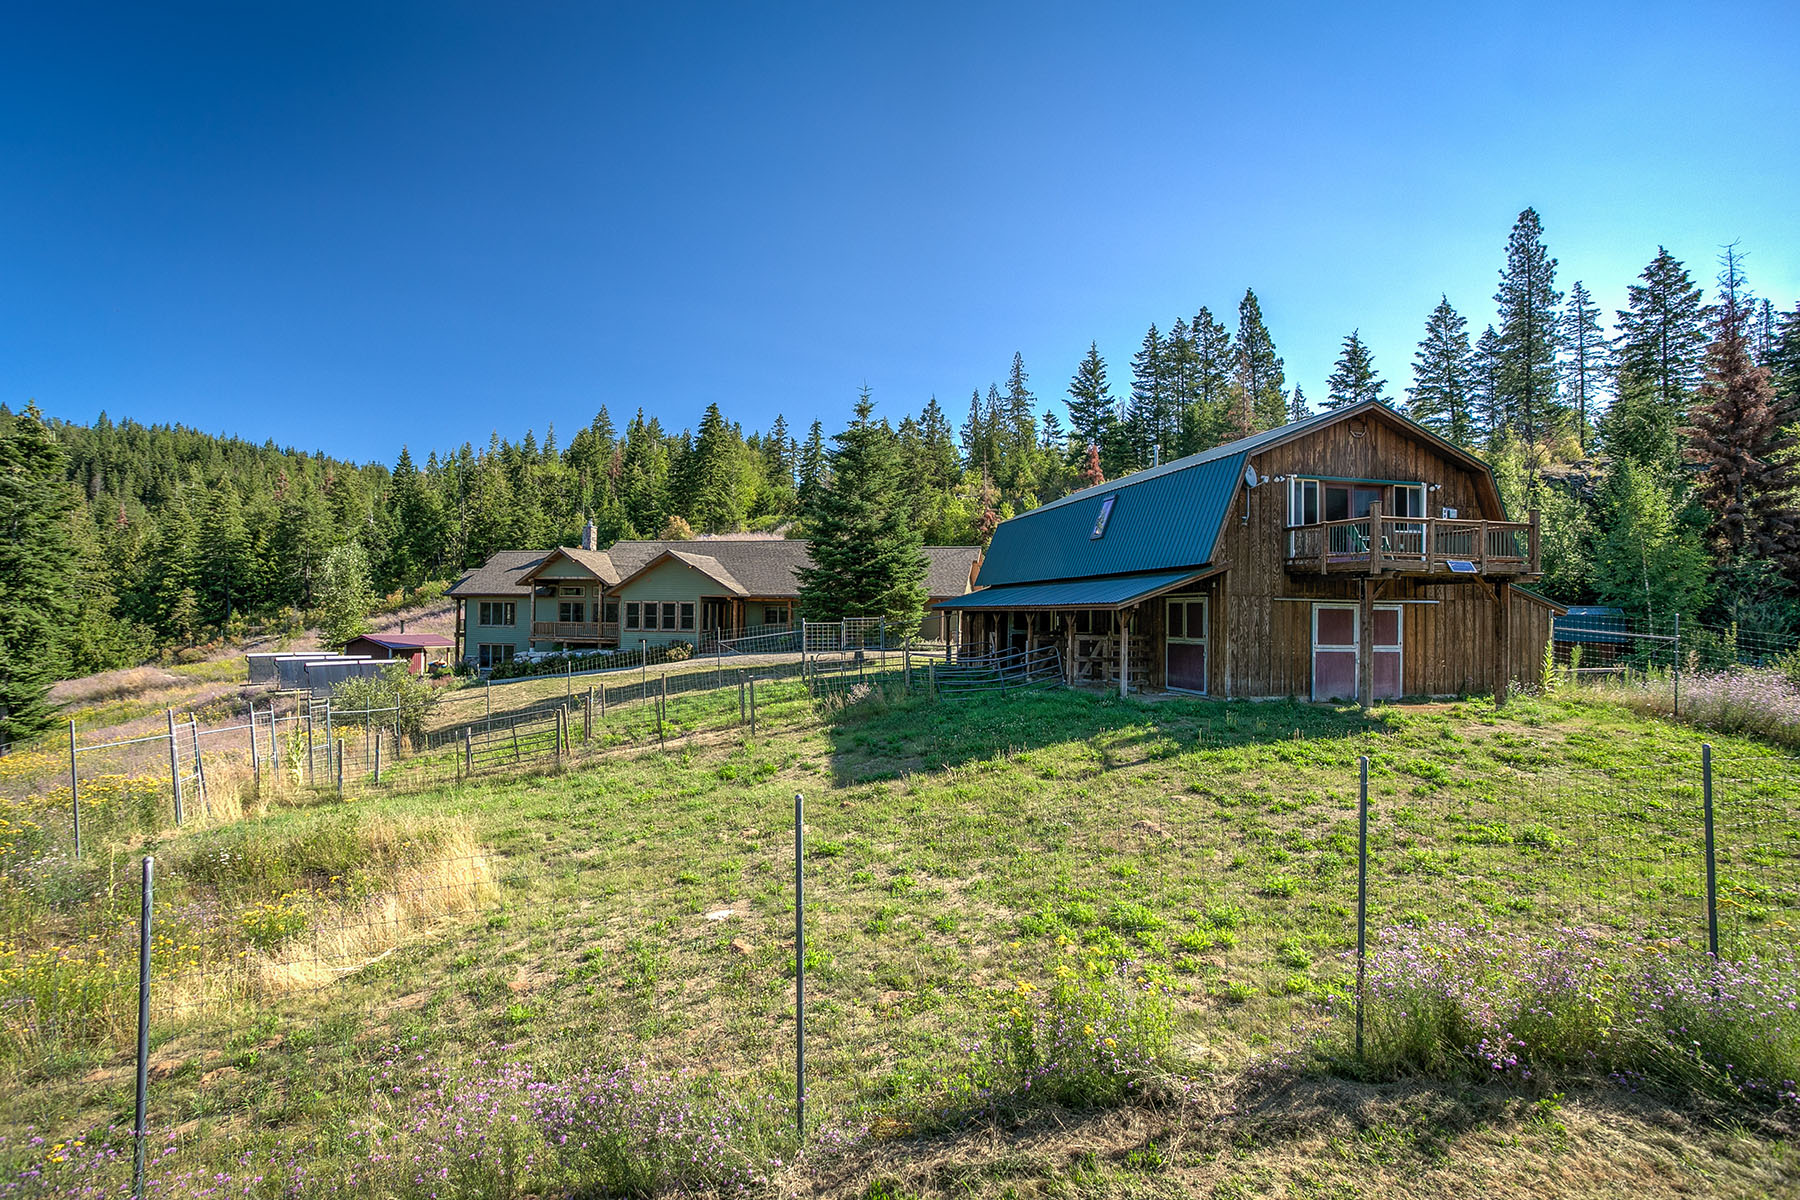 獨棟家庭住宅 為 出售 在 2 Homes, 3 Cabins & 1 Barn on 320 Acres 0 Trout Creek Ranch Rd Sandpoint, 愛達荷州, 83864 美國